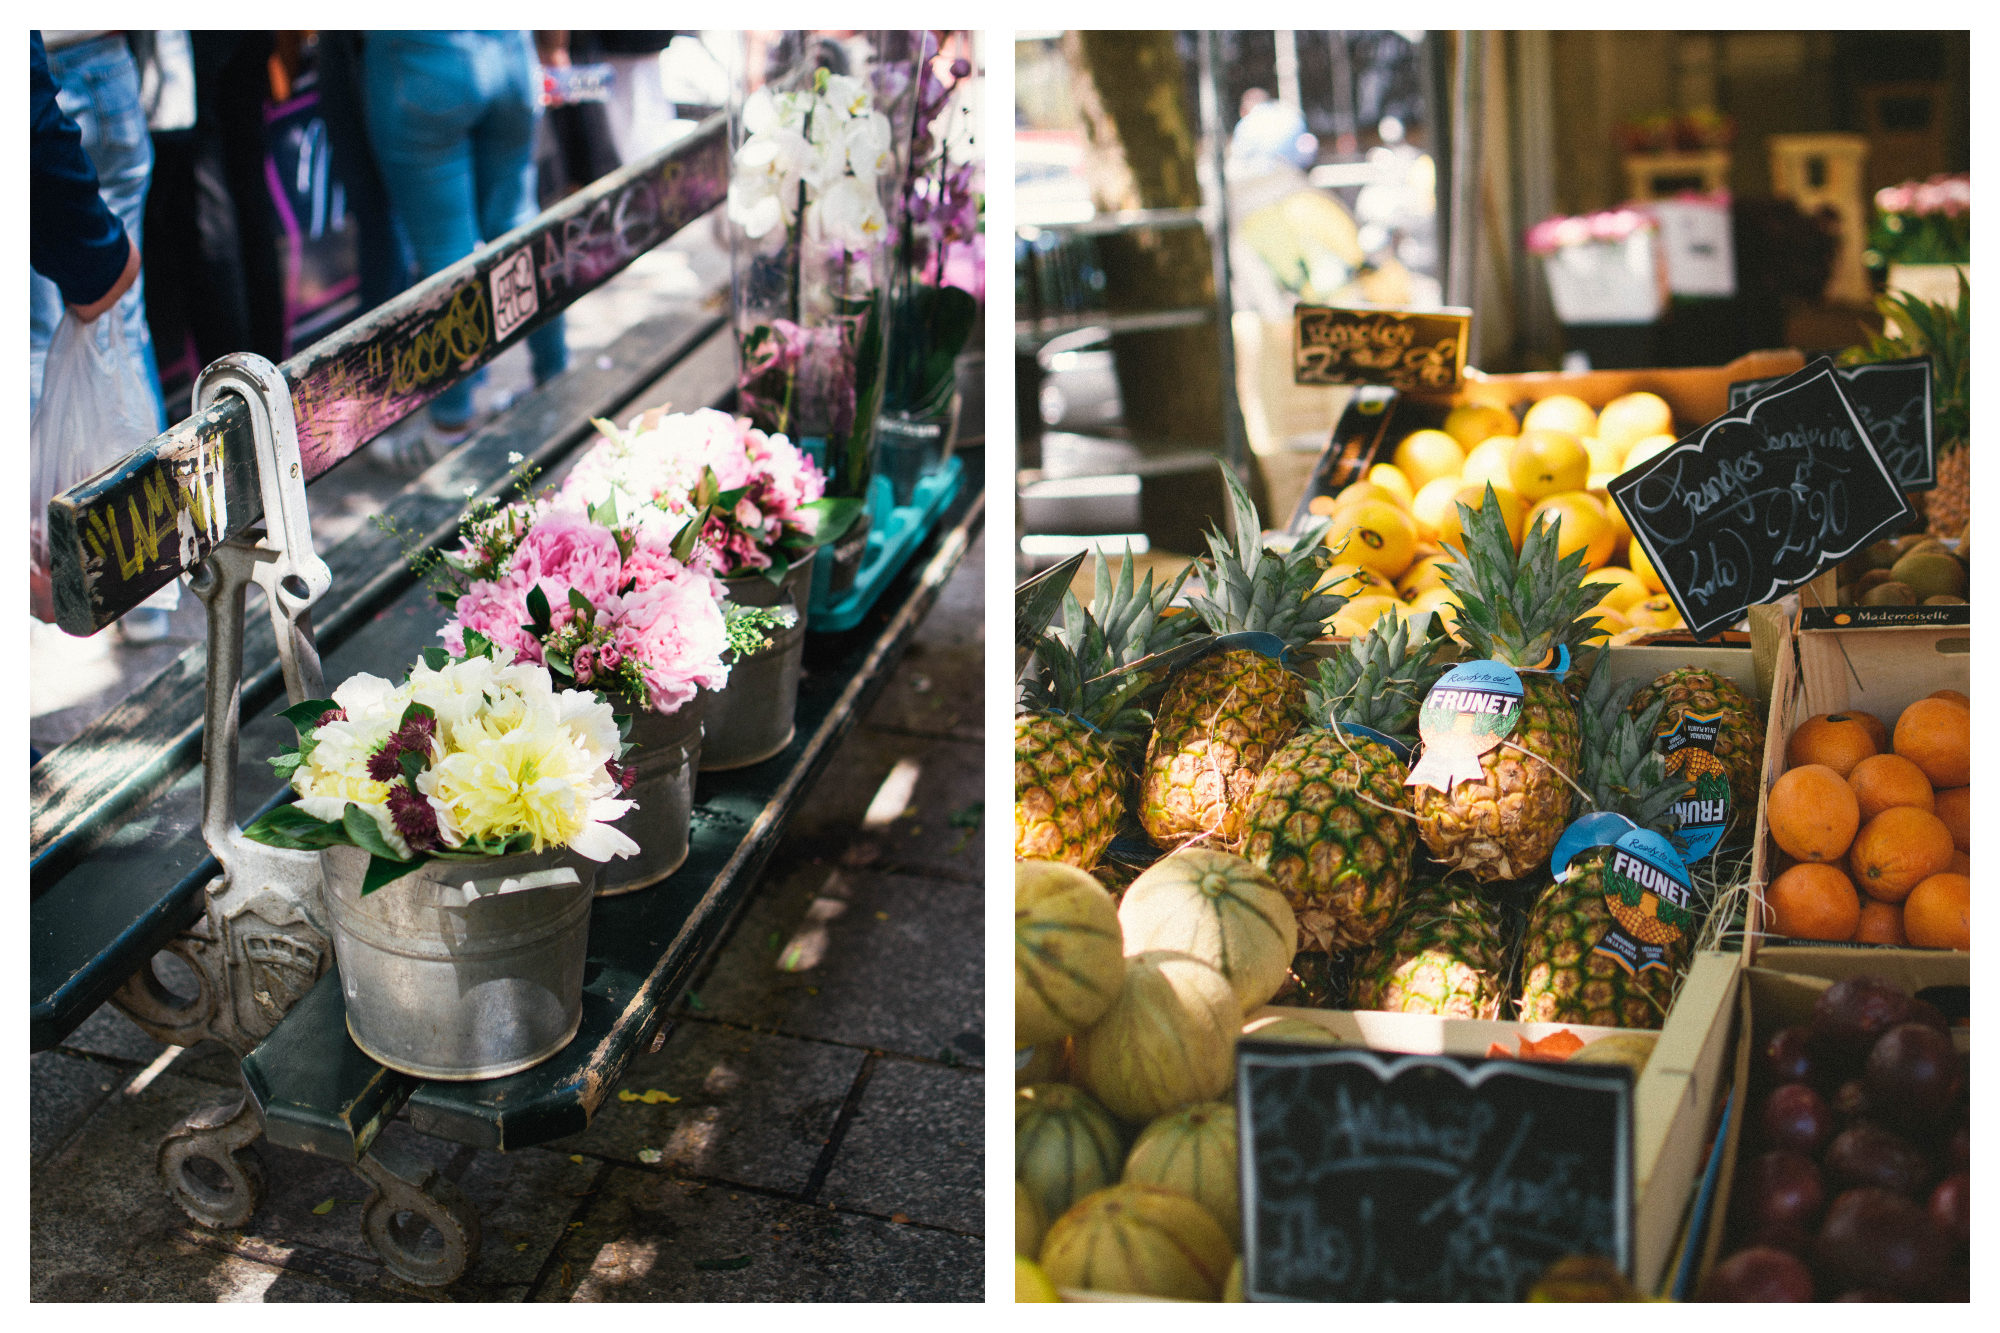 Paris neighborhood markets sell everything from flowers like these beautiful bouquets lined up on a bench  (left) to exotic fruit like pineapples (right).